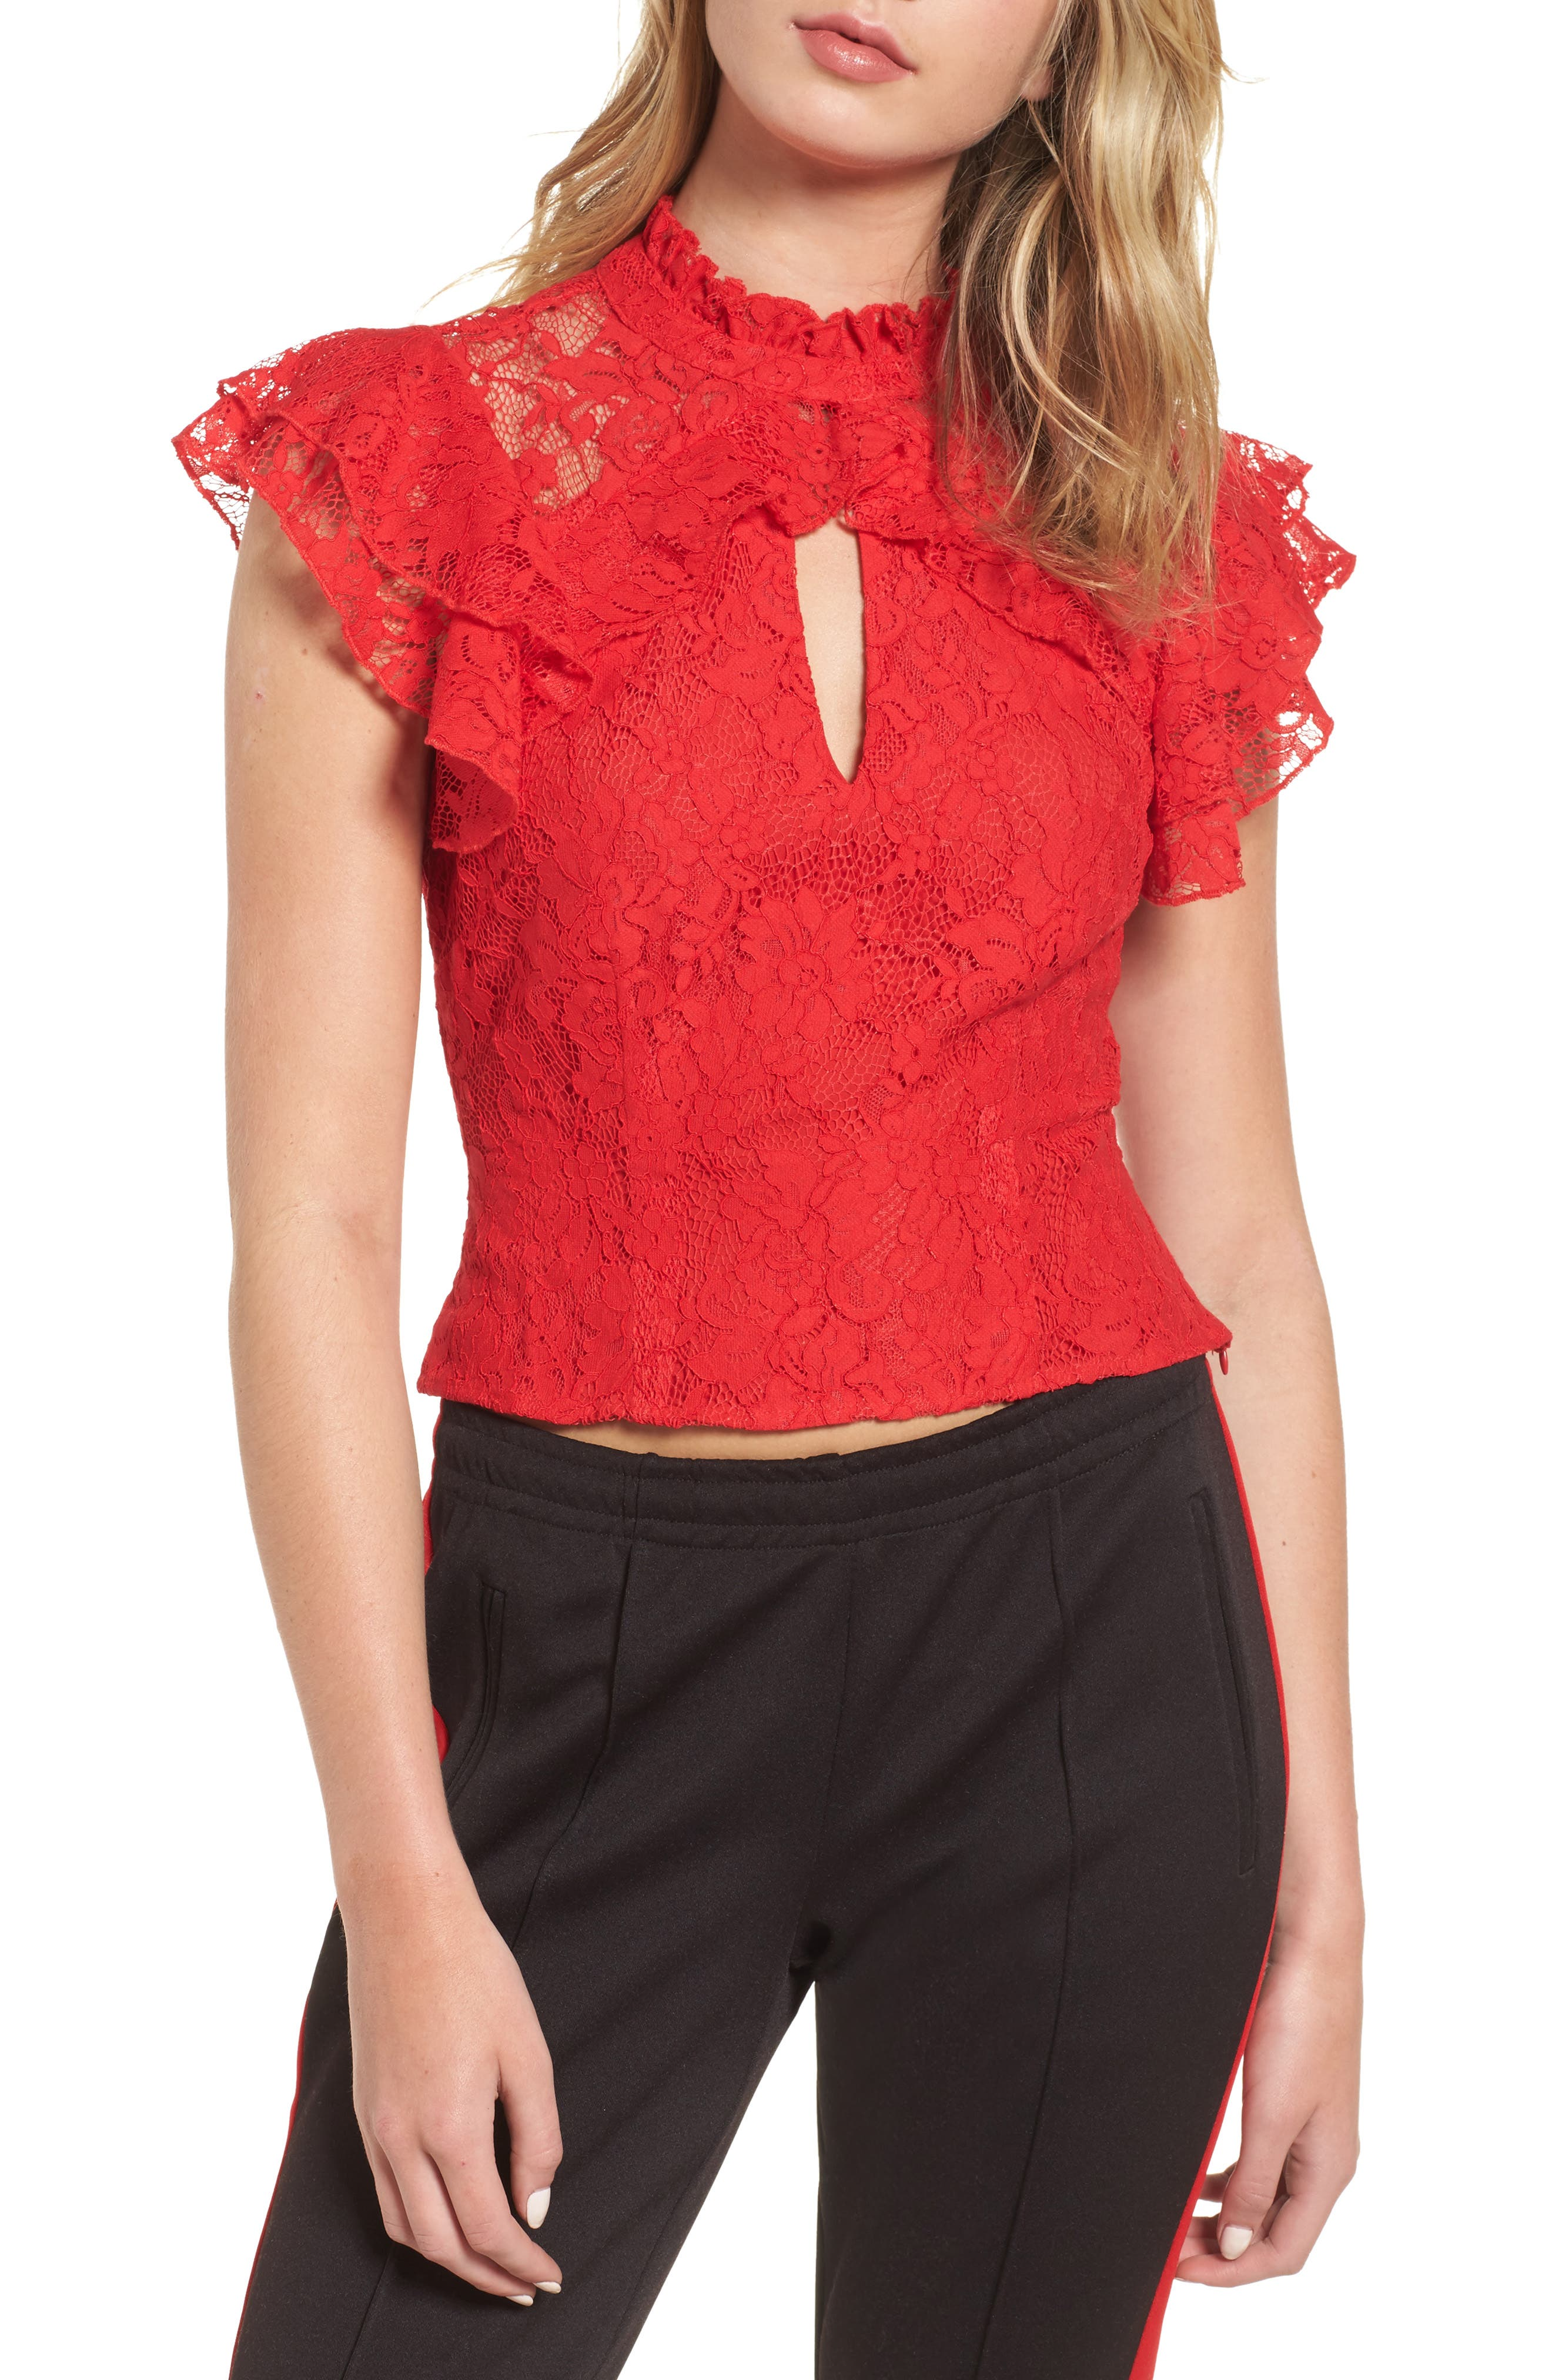 Main Image - AFRM Blaire Ruffle Lace Top